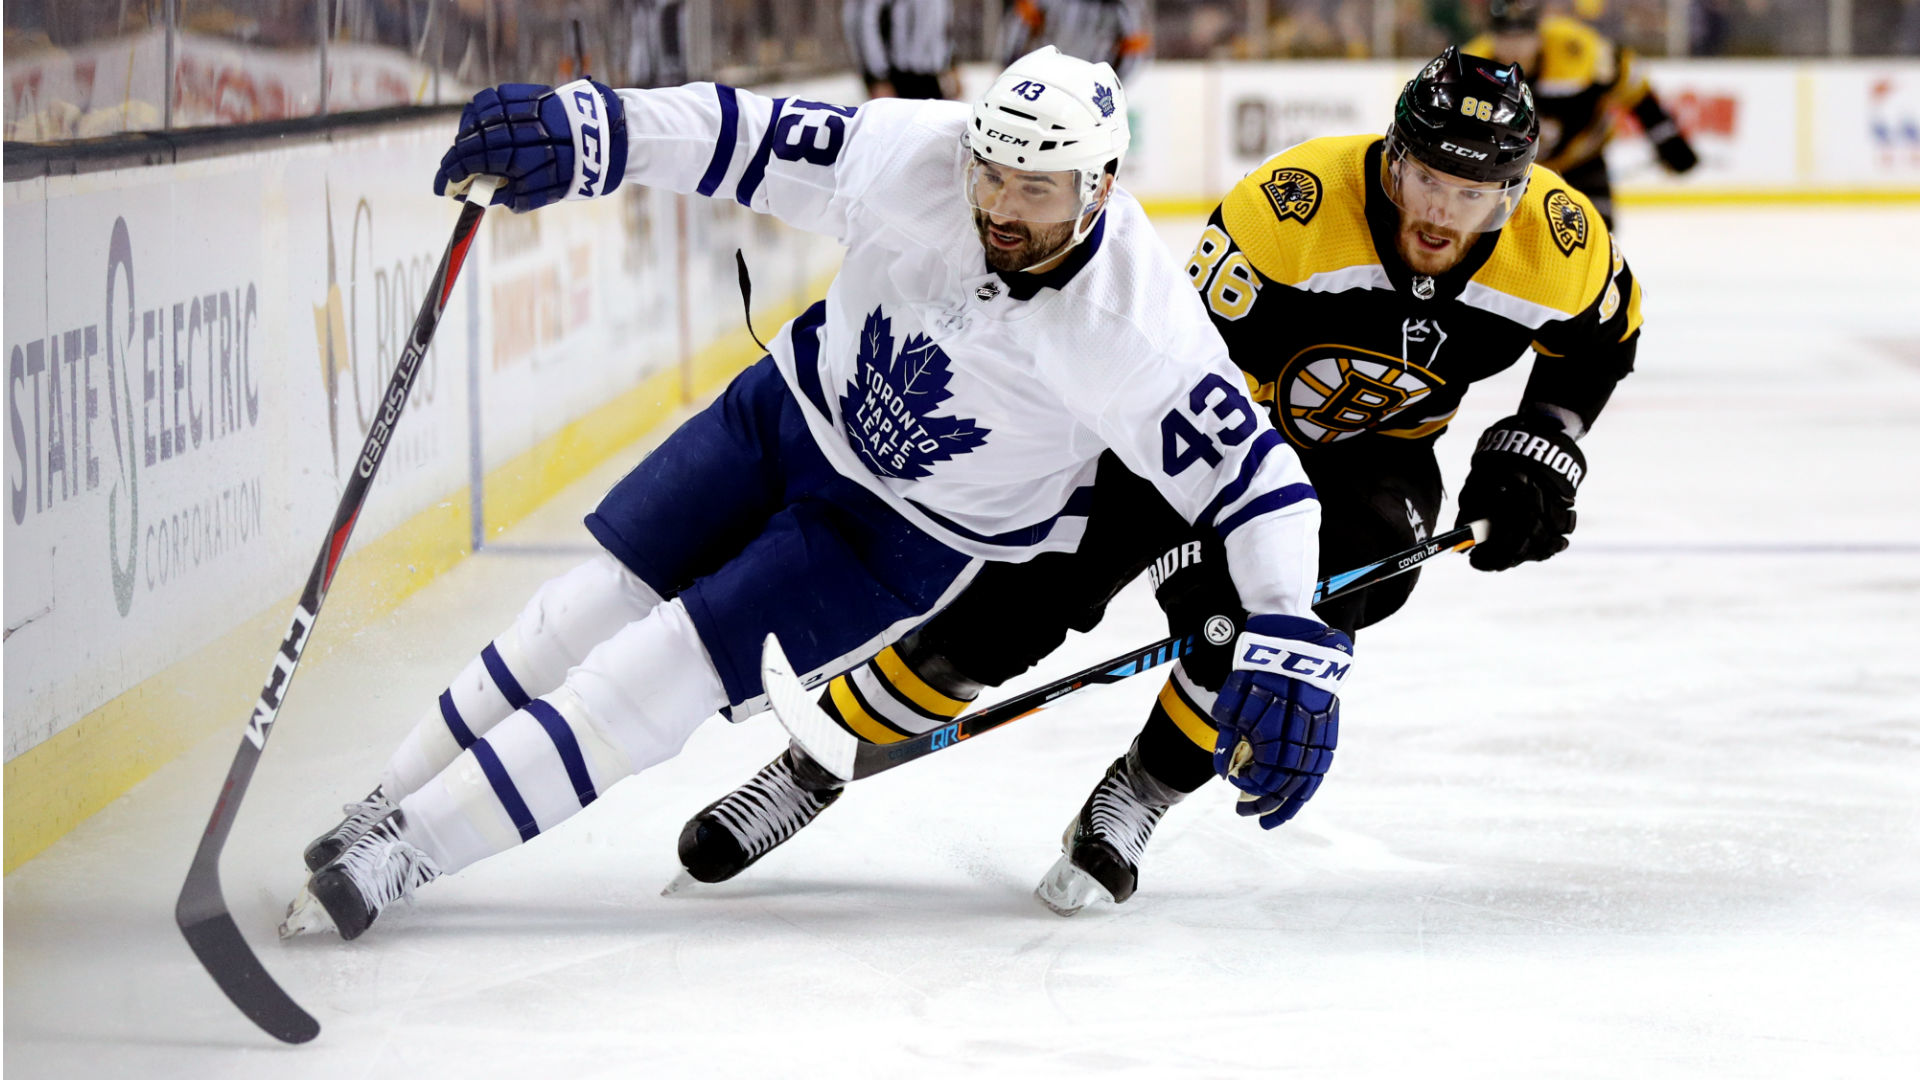 Andersen leads Maple Leafs in win over Bruins to force Game 7